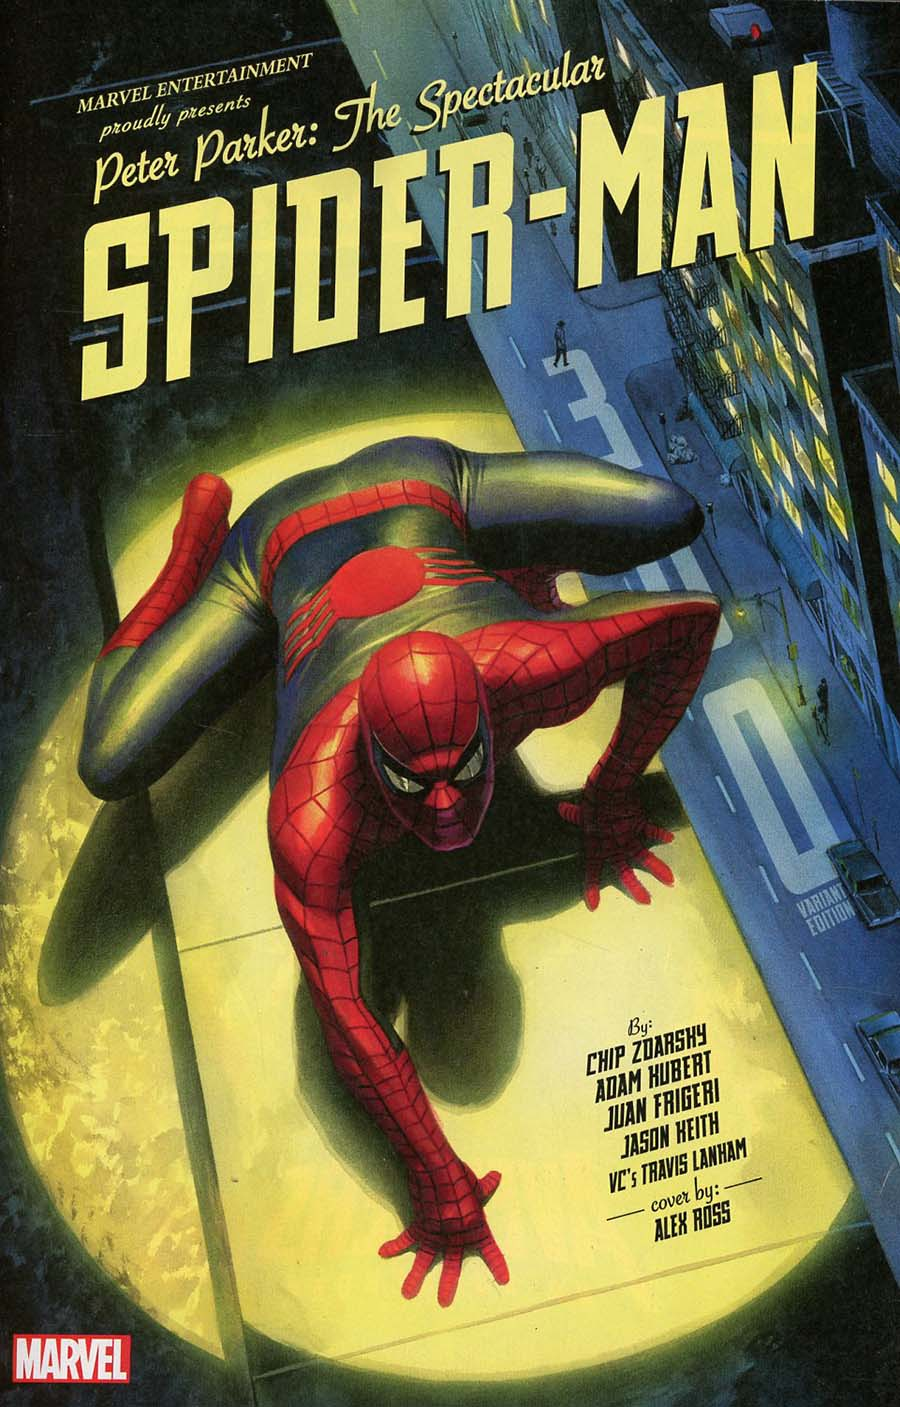 Peter Parker Spectacular Spider-Man #300 Cover F Incentive Alex Ross Variant Cover (Marvel Legacy Tie-In)